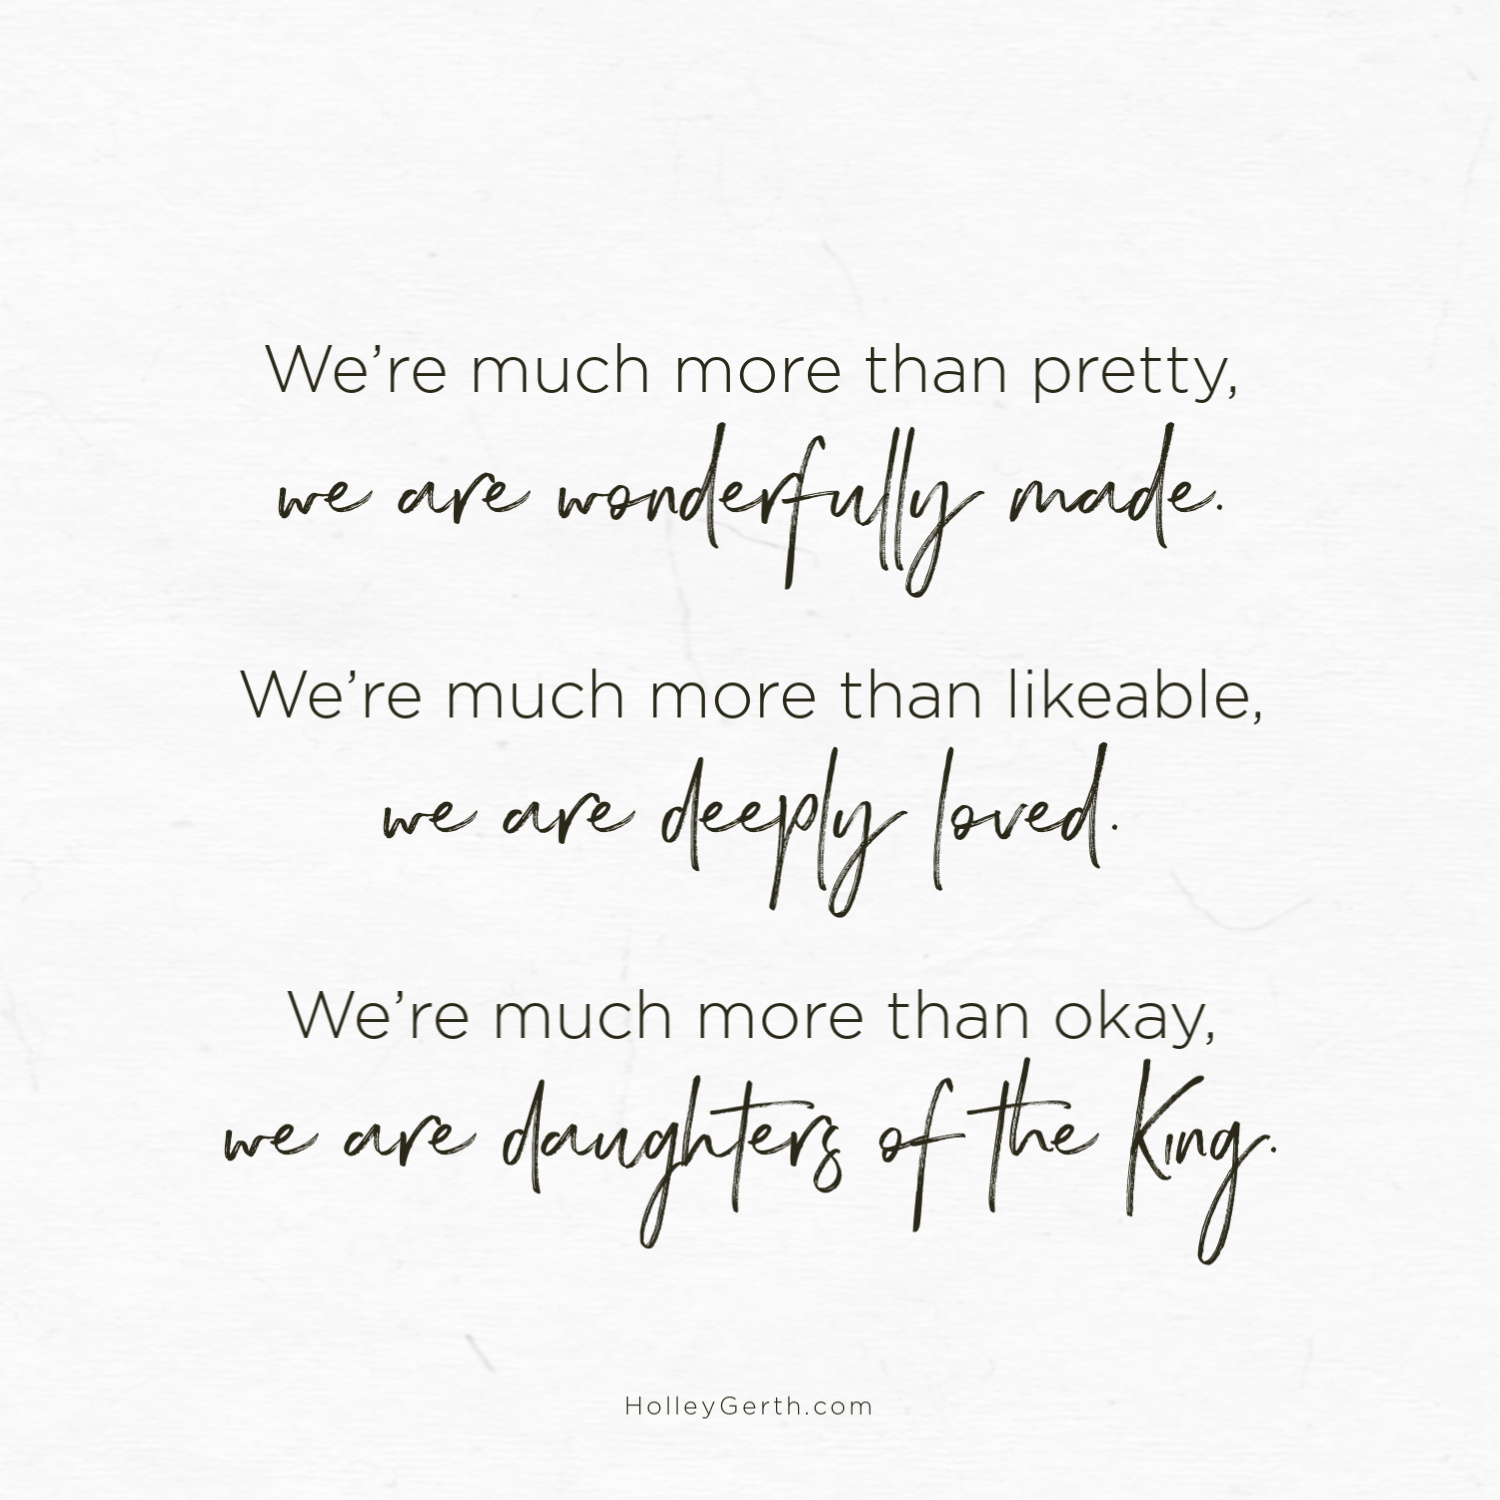 We're much more than pretty, we are wonderfully made. We're much more than likeable, we are deeply loved. We're much more than okay, we are daughters of the King.